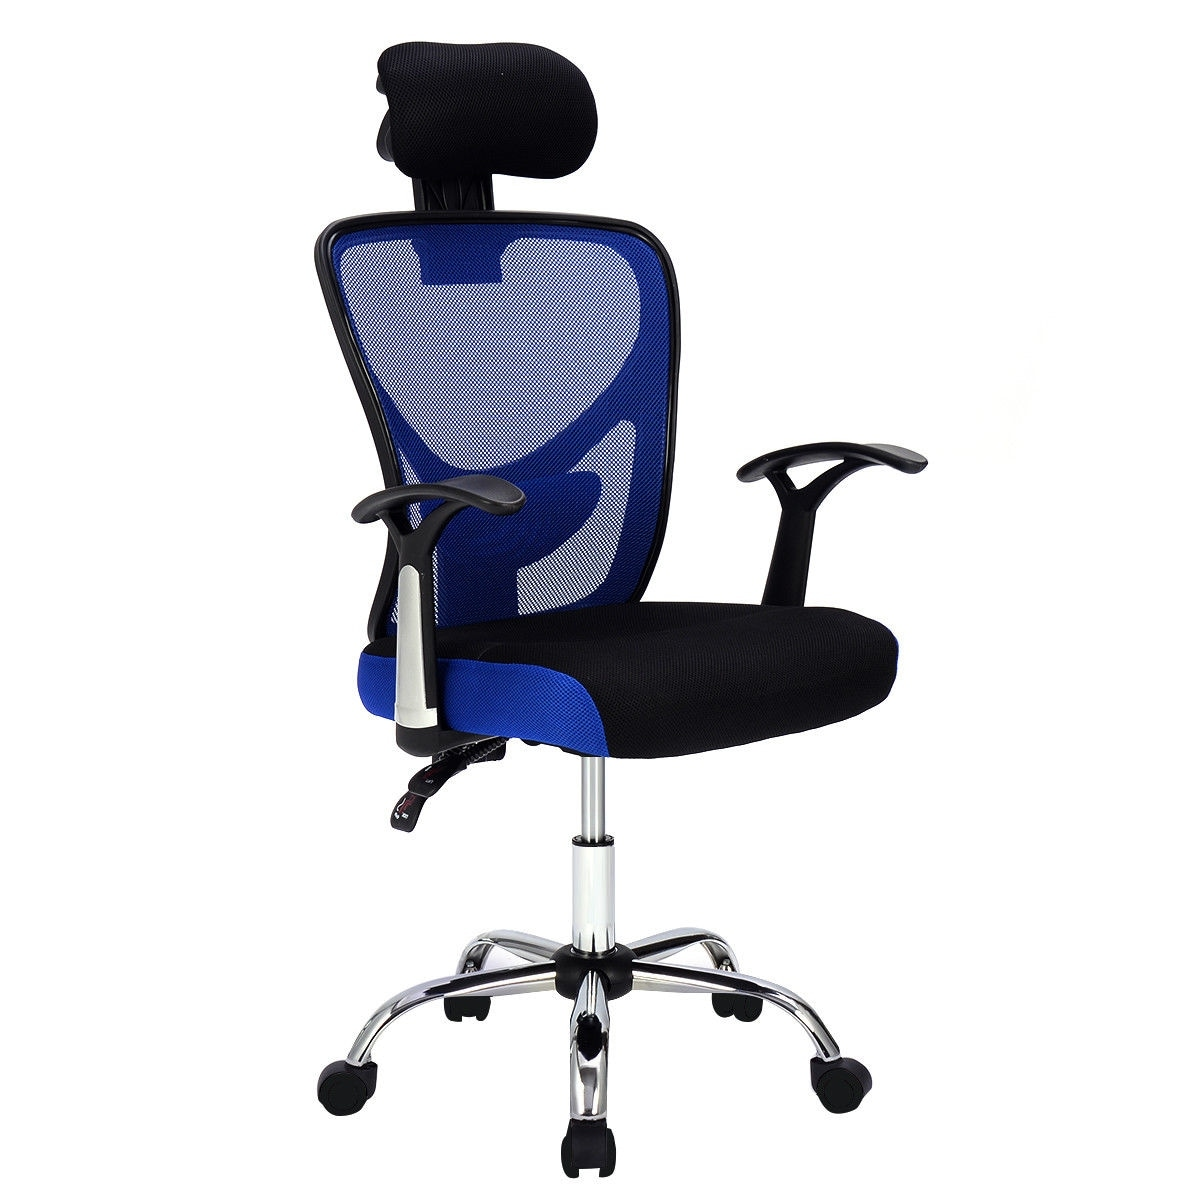 office chair with headrest buy covers nz shop gymax swivel ergonomic mesh high back adjustable blue